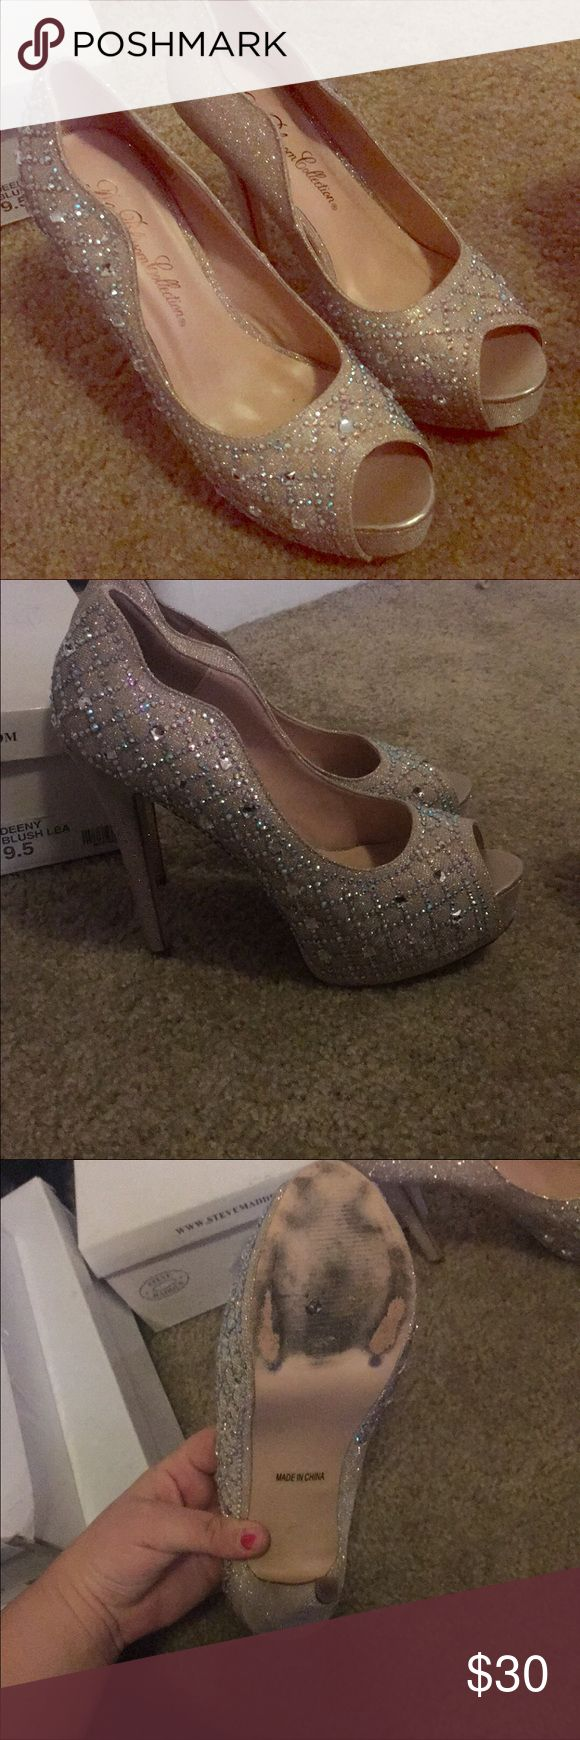 Homecoming/prom shoes Only worn once. They are gorgeous and sparkle in the light. The base color is nude with silver gems. Size 9. Shoes Heels